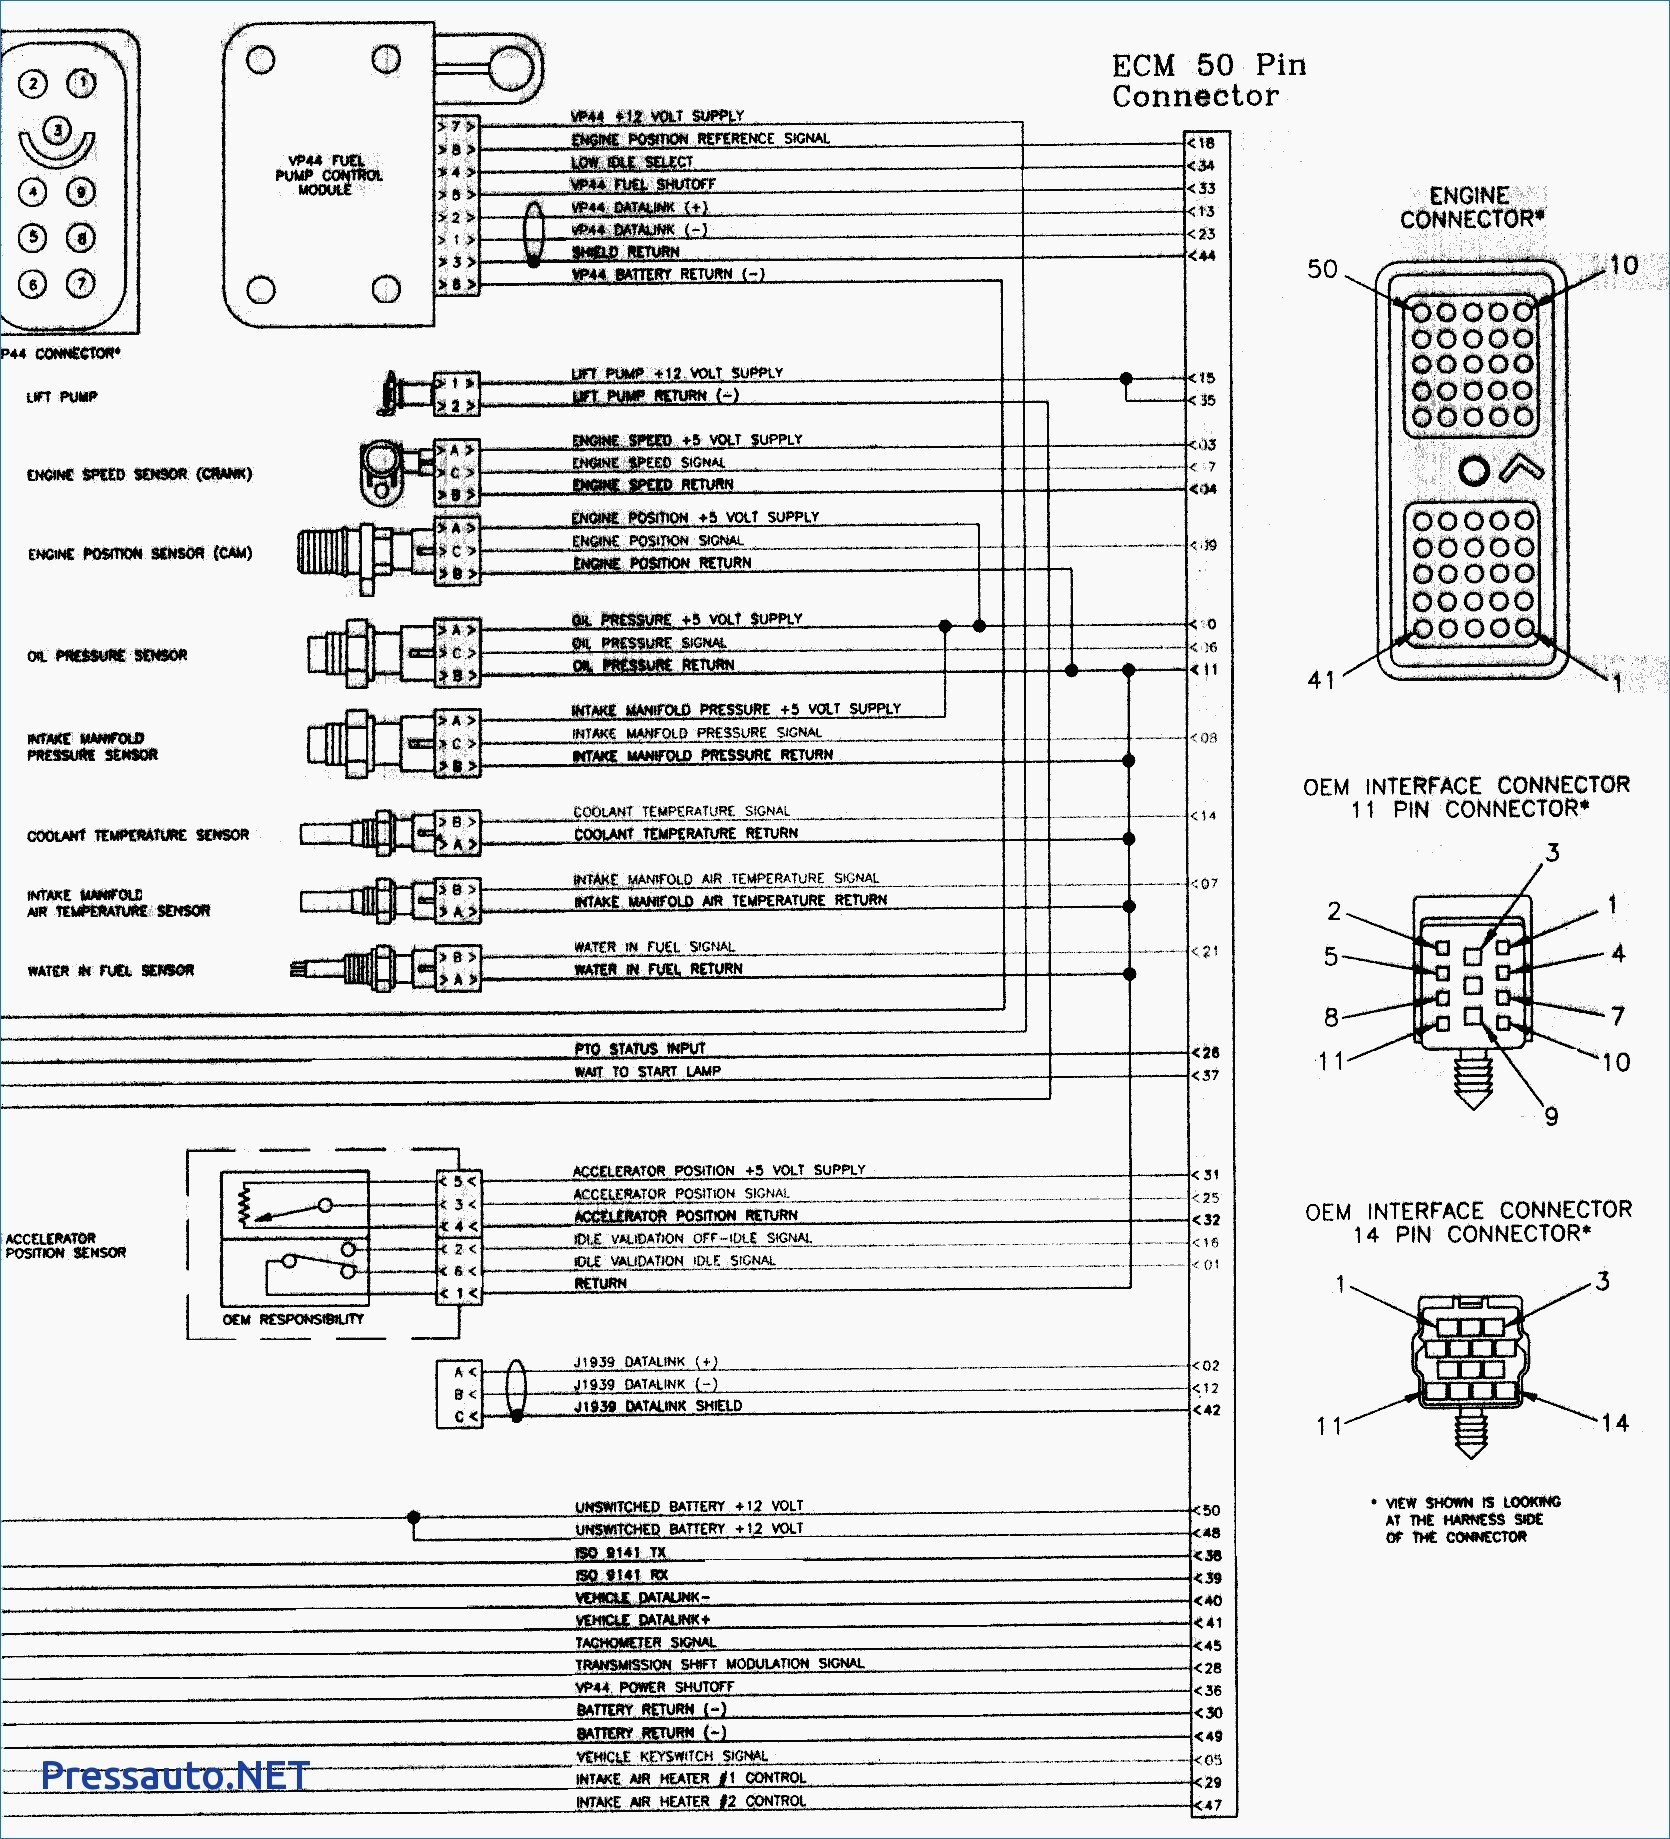 2001 dodge ram 1500 pcm wiring diagram Download-Refrence 2002 Dodge Ram 1500 Pcm Wiring Diagram 8-r